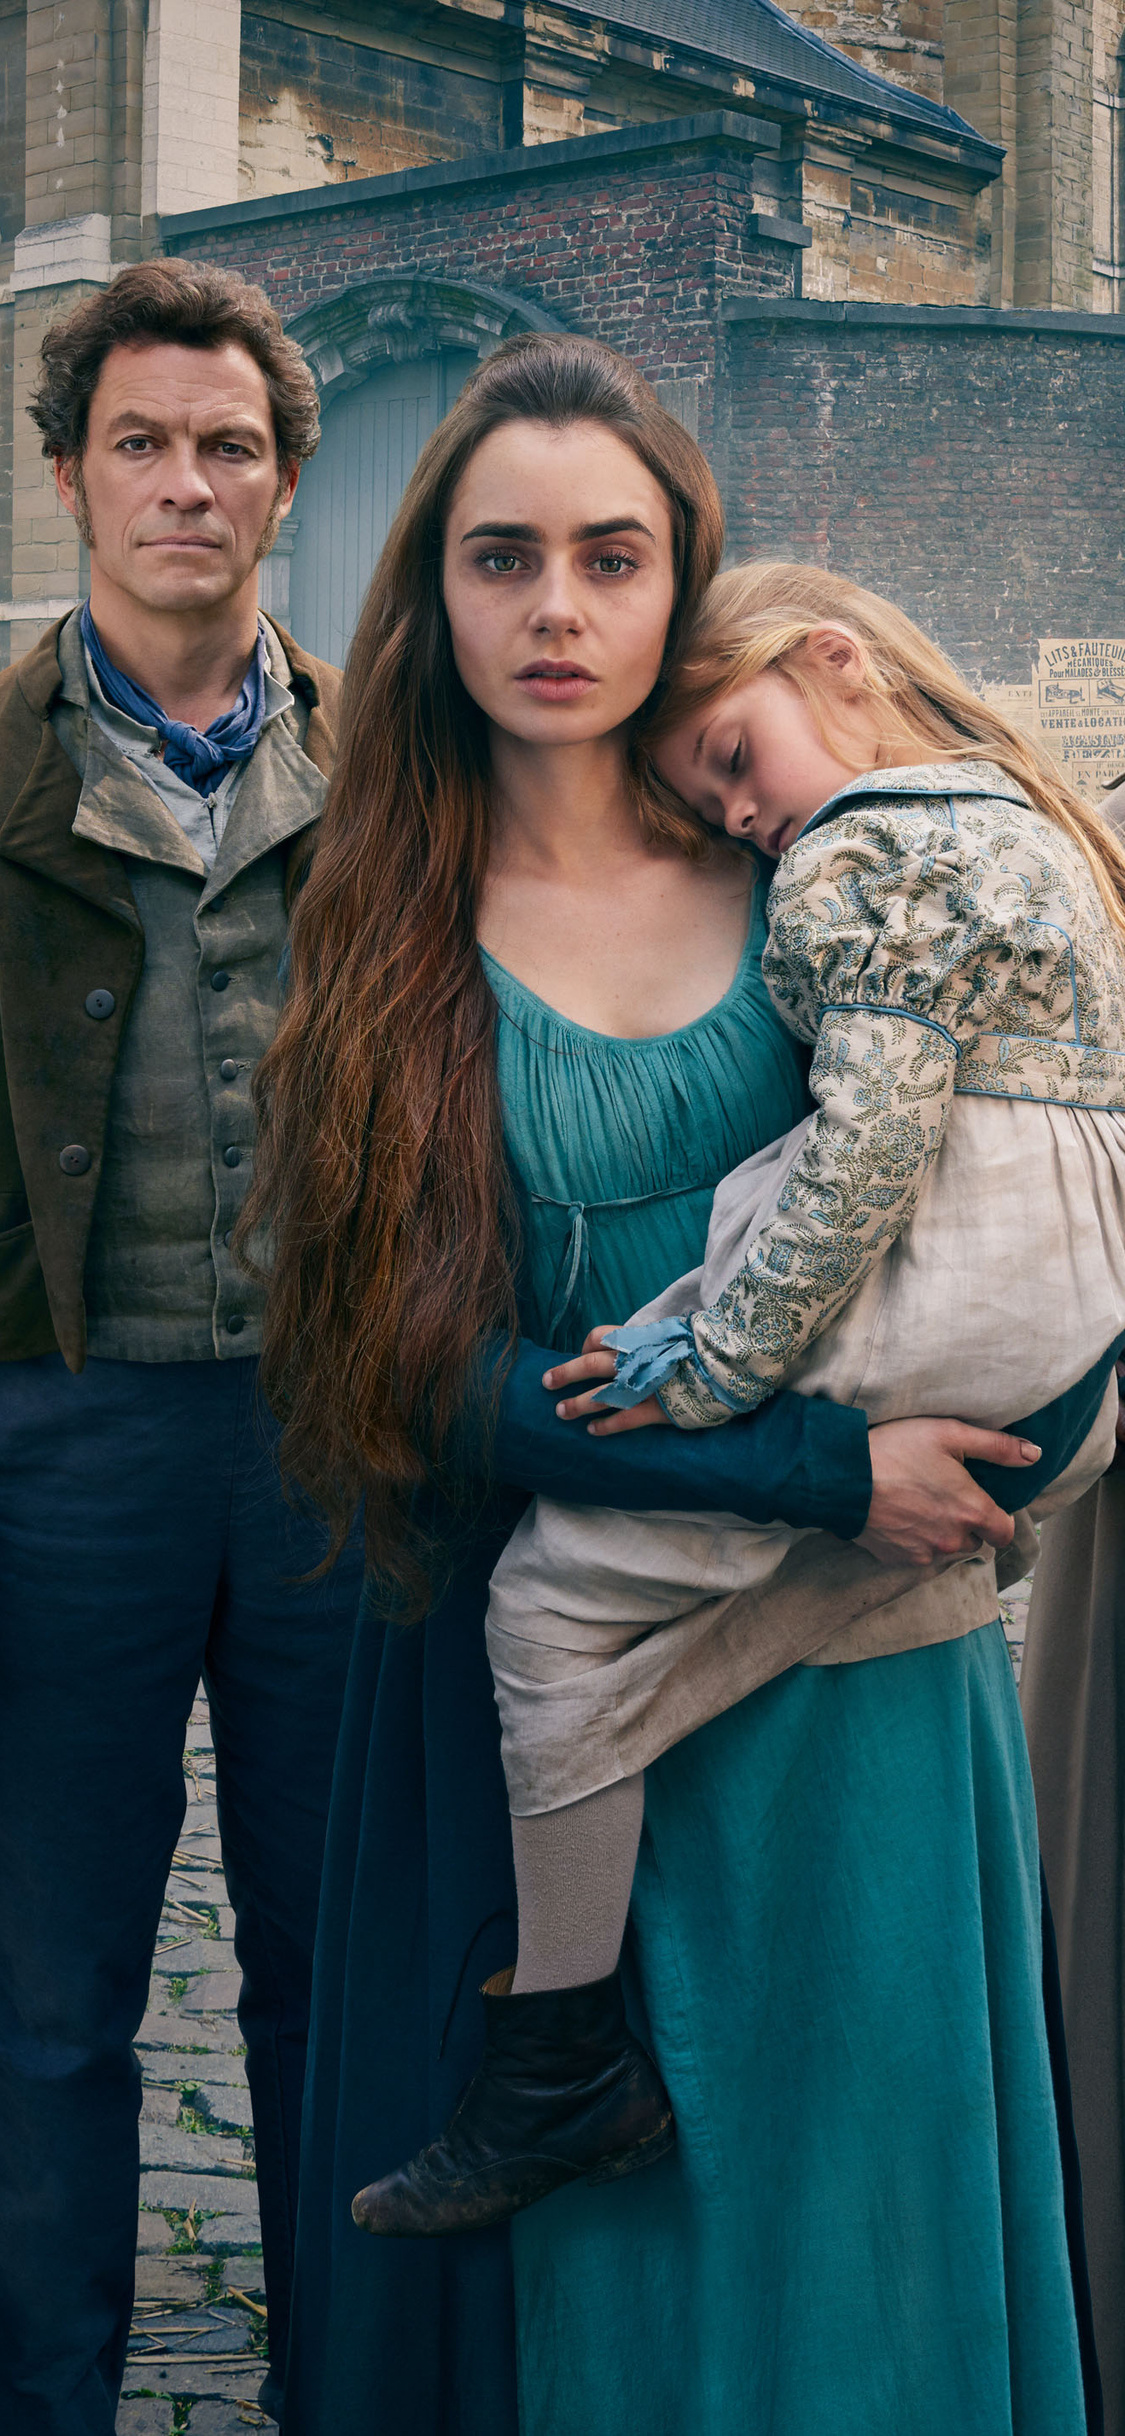 1125x2436 Fantine As Lily Collins In Les Miserables Iphone Xs Iphone 10 Iphone X Hd 4k Wallpapers Images Backgrounds Photos And Pictures